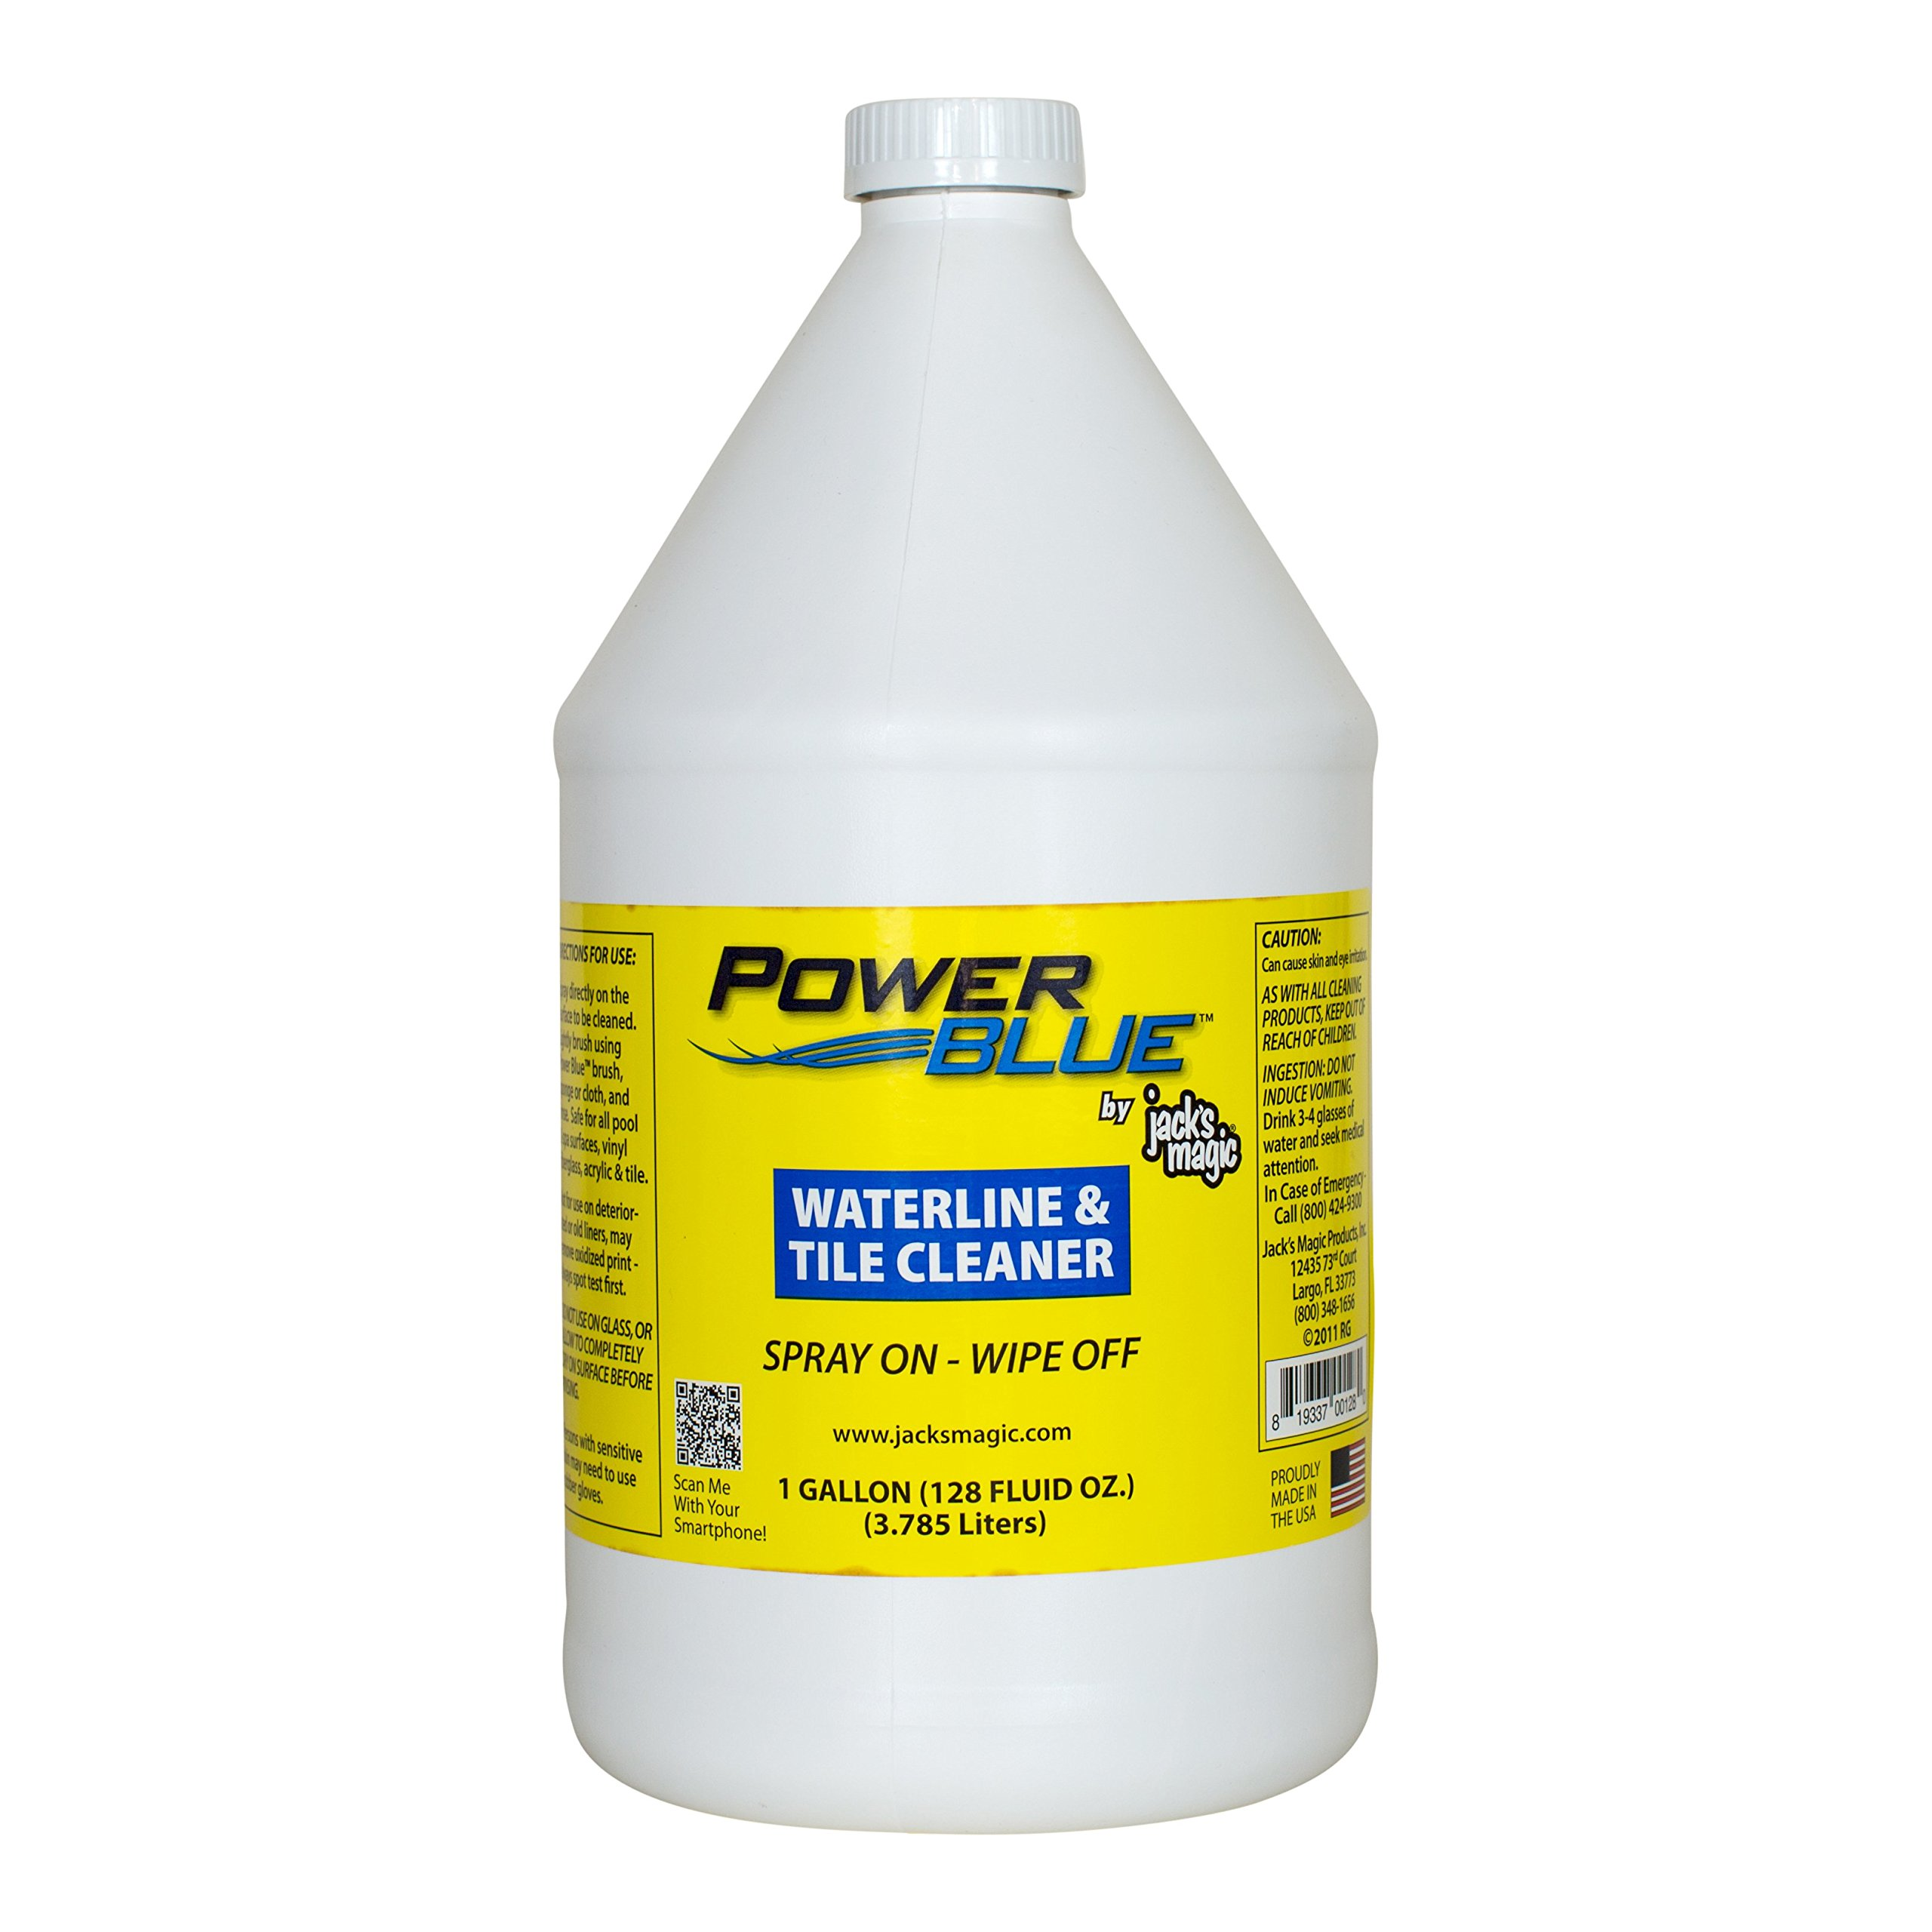 Power Blue Water Line and Tile Cleaner Size: 1 Gallon